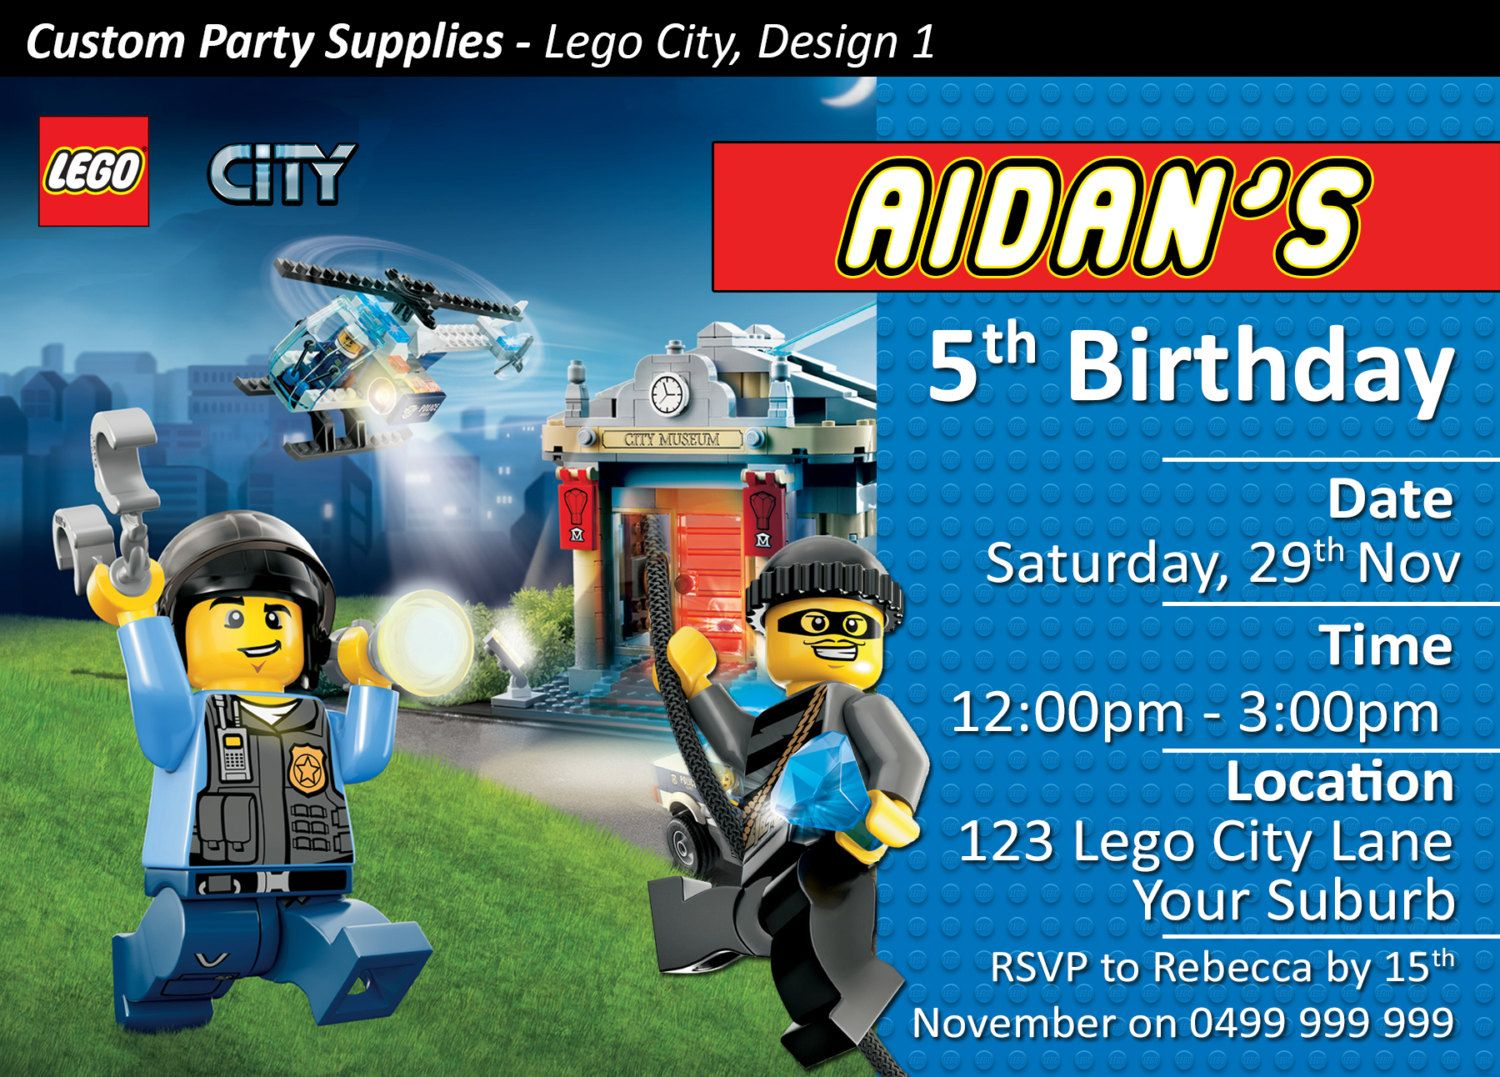 Pin By Adrienne Loveland On Lego Birthday Lego City Birthday Lego